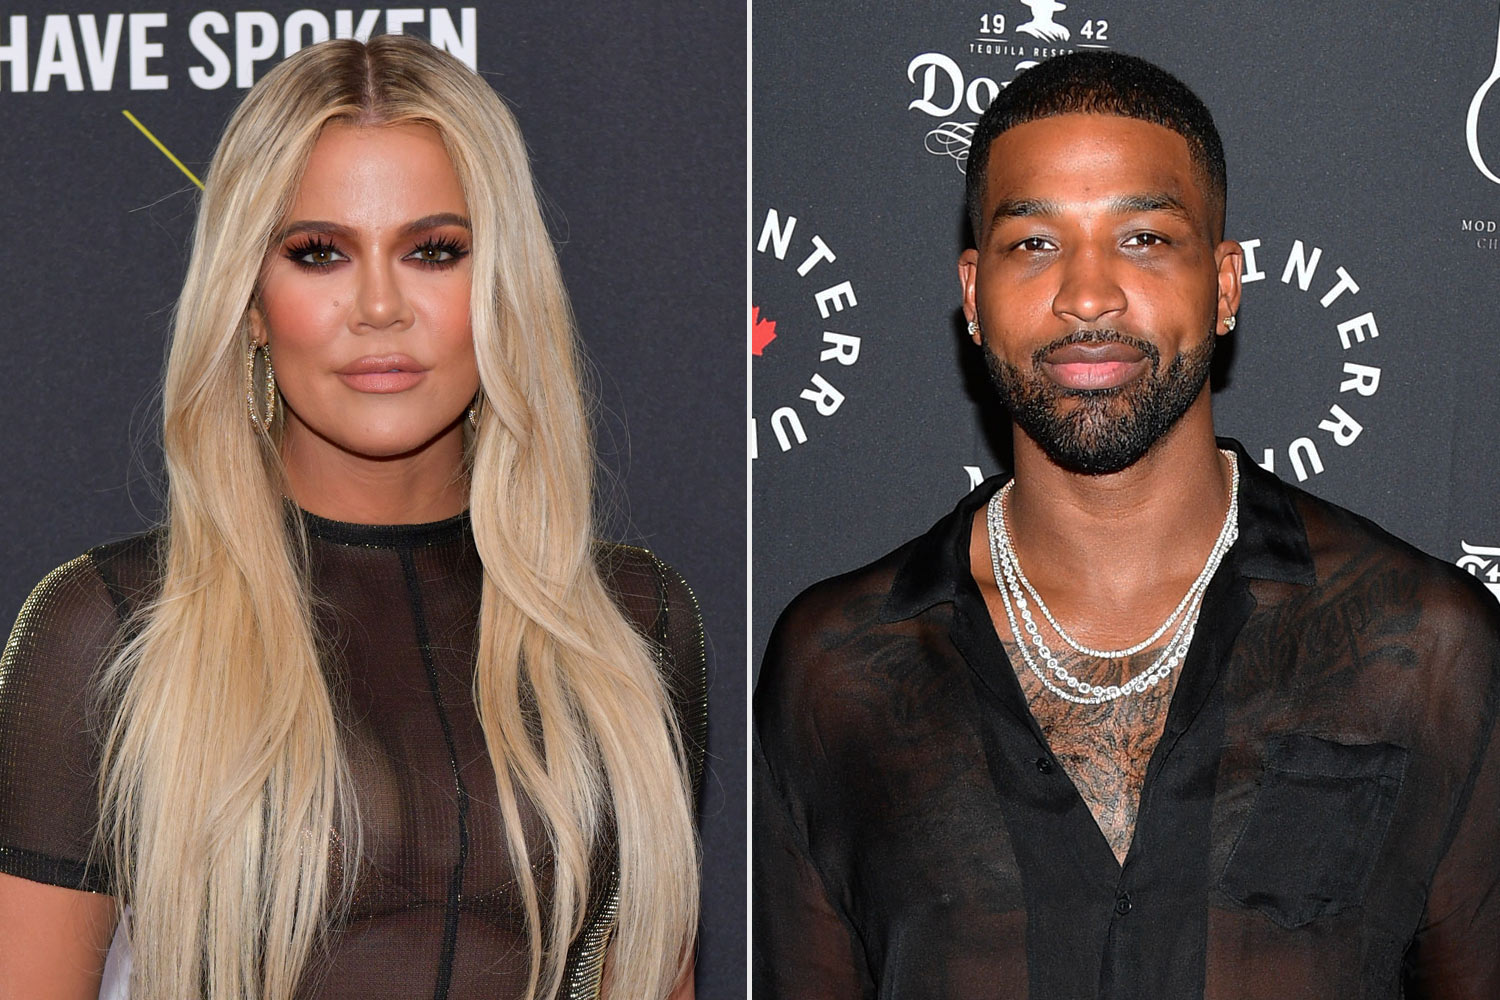 KUWTK: Tristan Thompson Offers Up His House to Khloé ...